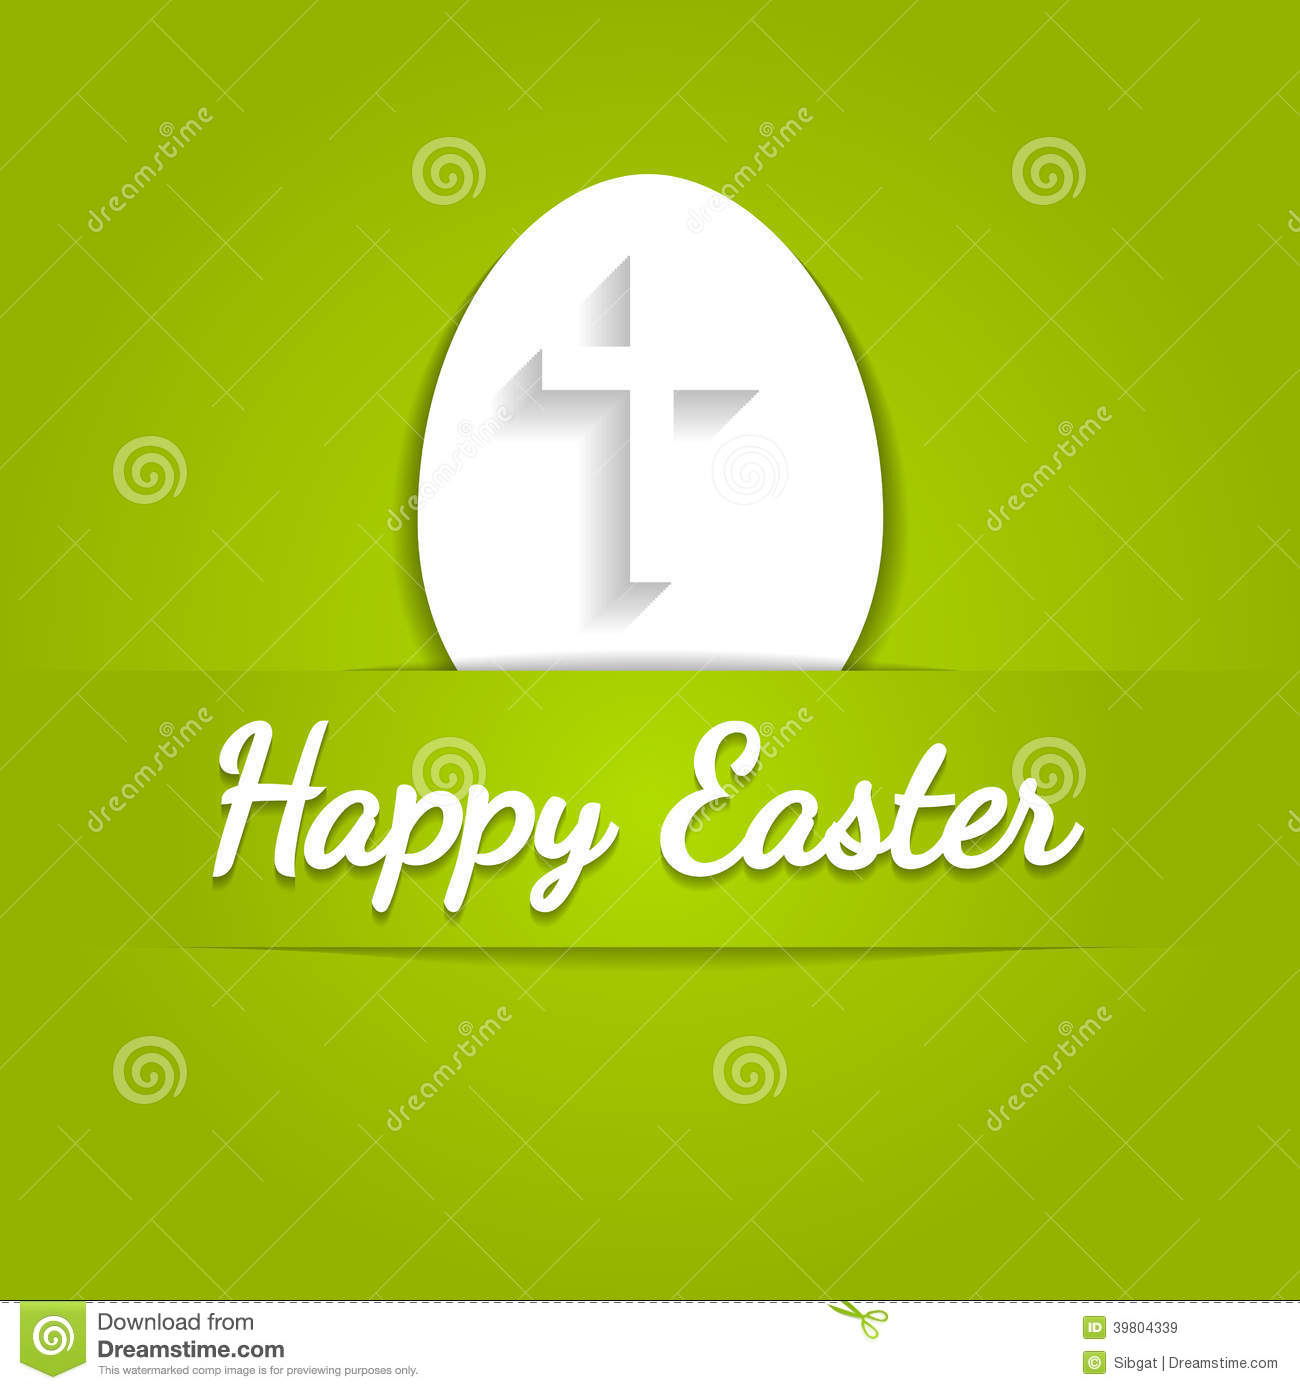 Happy easter eggs card with cross symbol stock vector happy easter eggs card with cross symbol buycottarizona